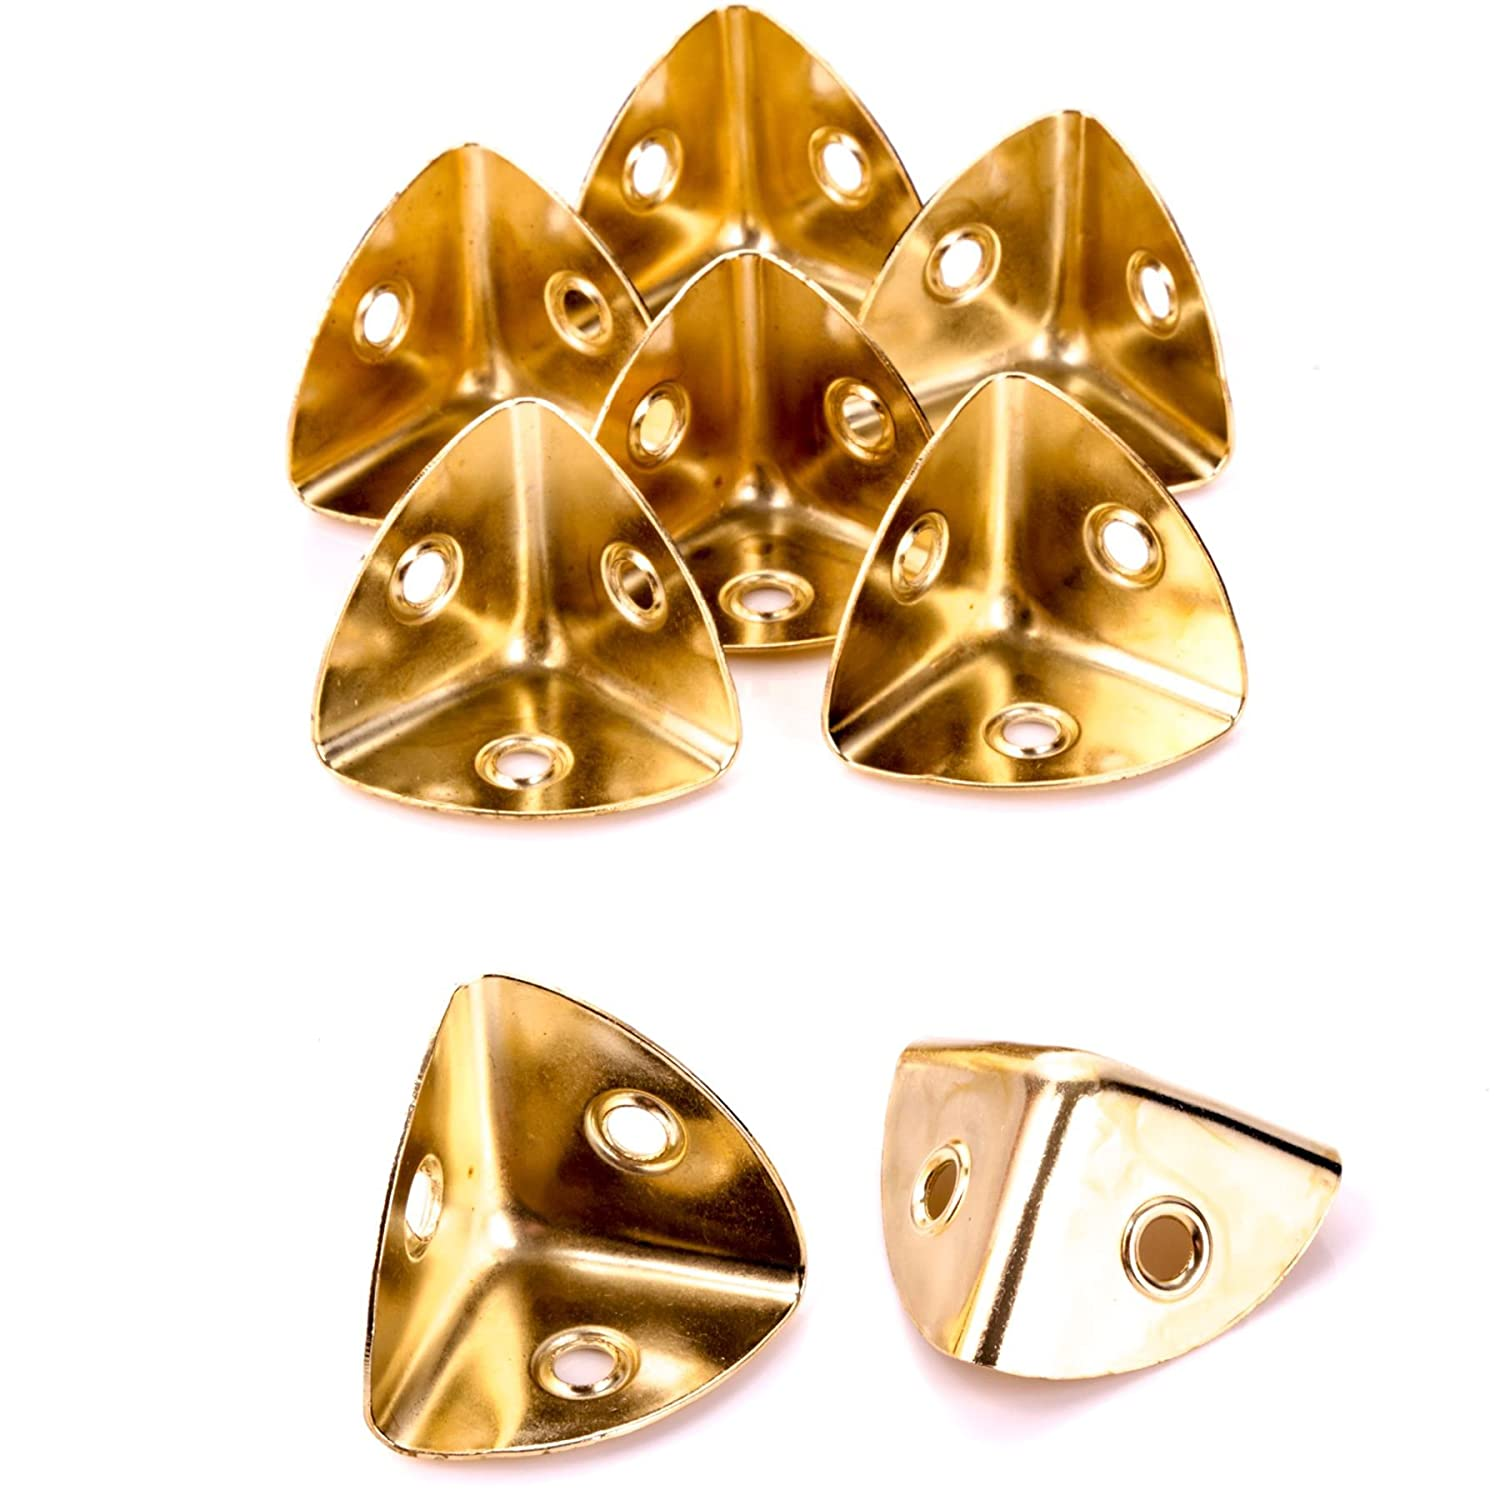 8x Brass Plated 28mm Case Corners for Strengthening/Repairing Box/Chest/Trunk White Hinge